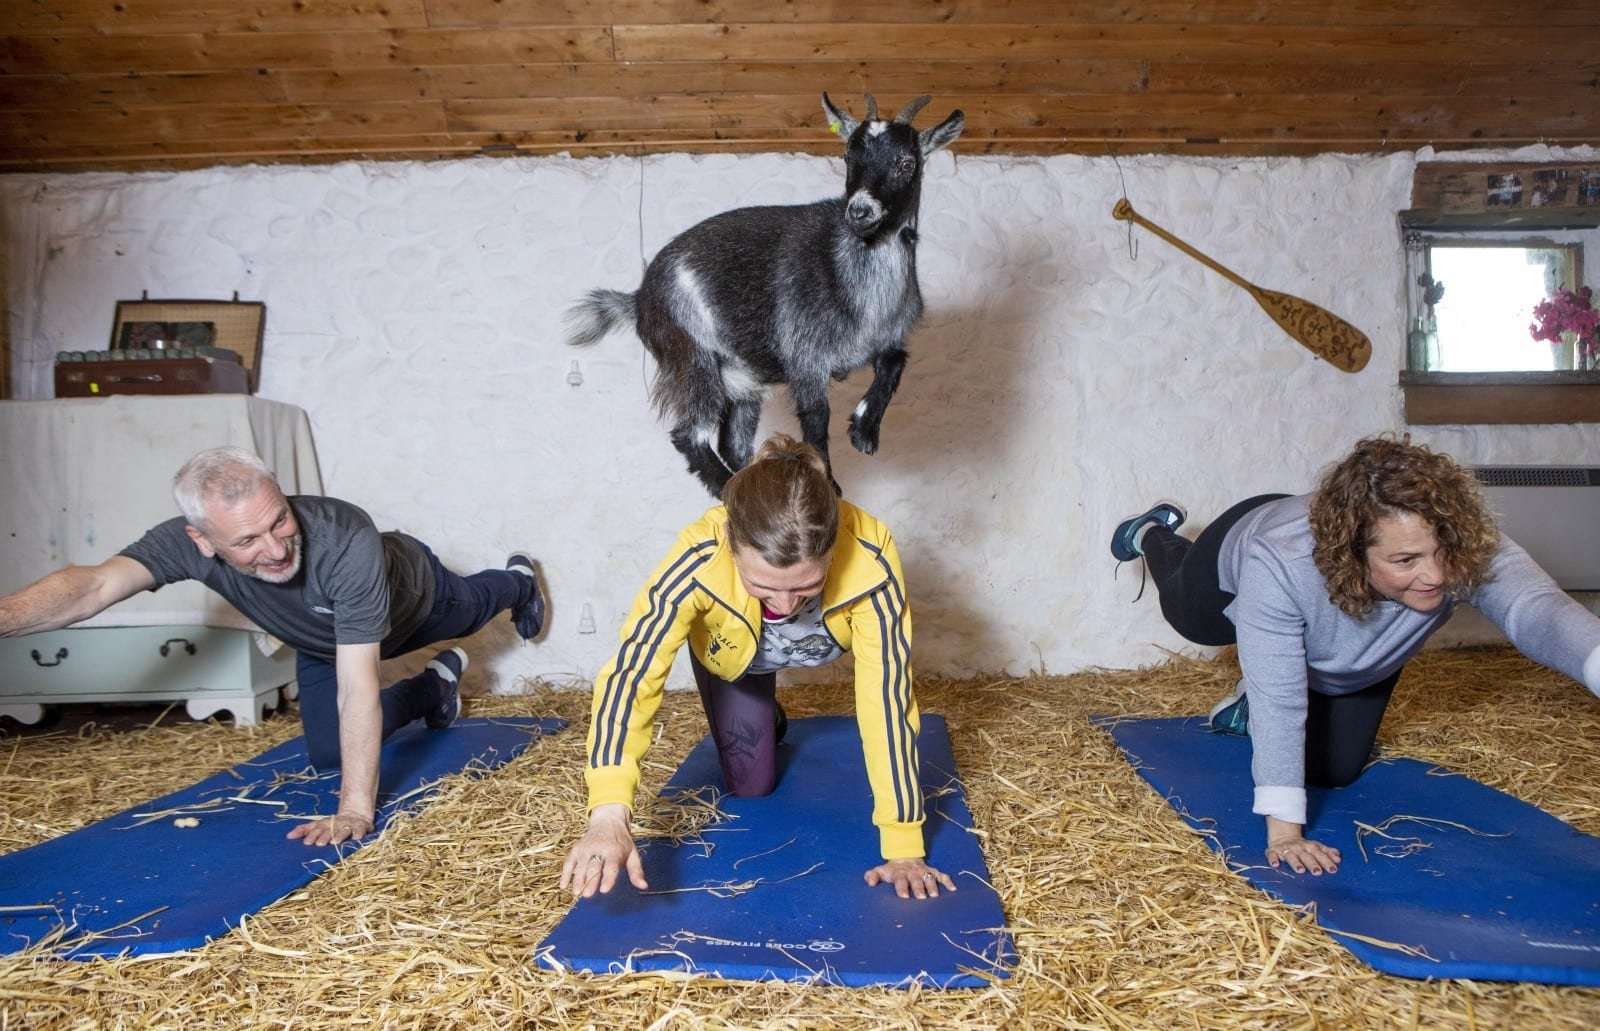 Fitness Class Has Become The First In Scotland To Practice Pilates With GOATS